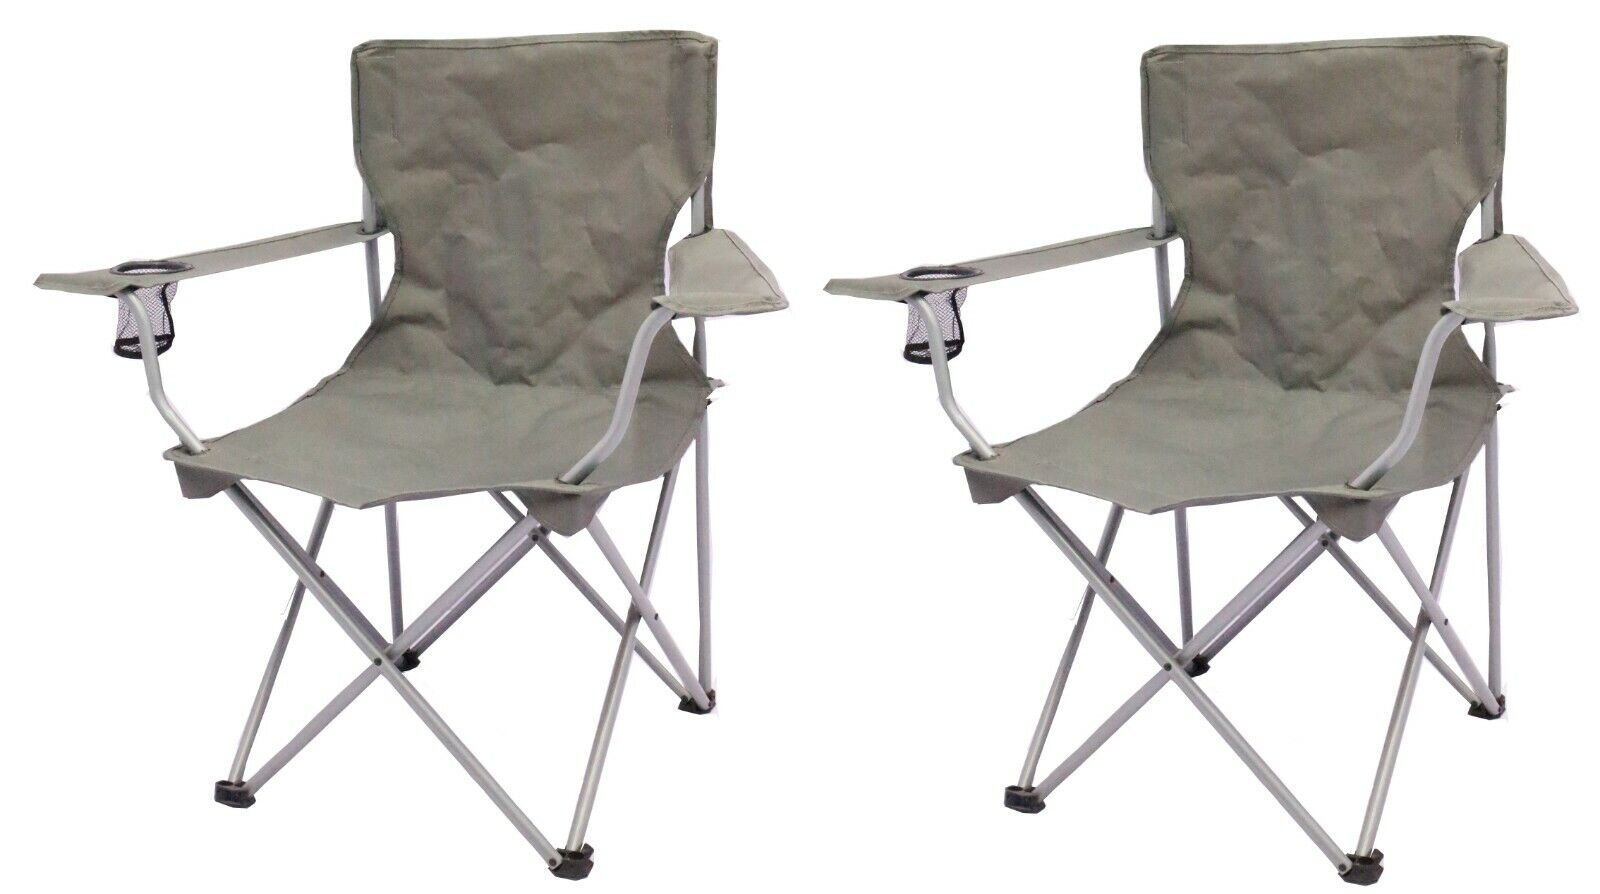 2 Pack Quad Folding Camping Chair Steel Frames One Armrest Gray Outdoor Seat NEW